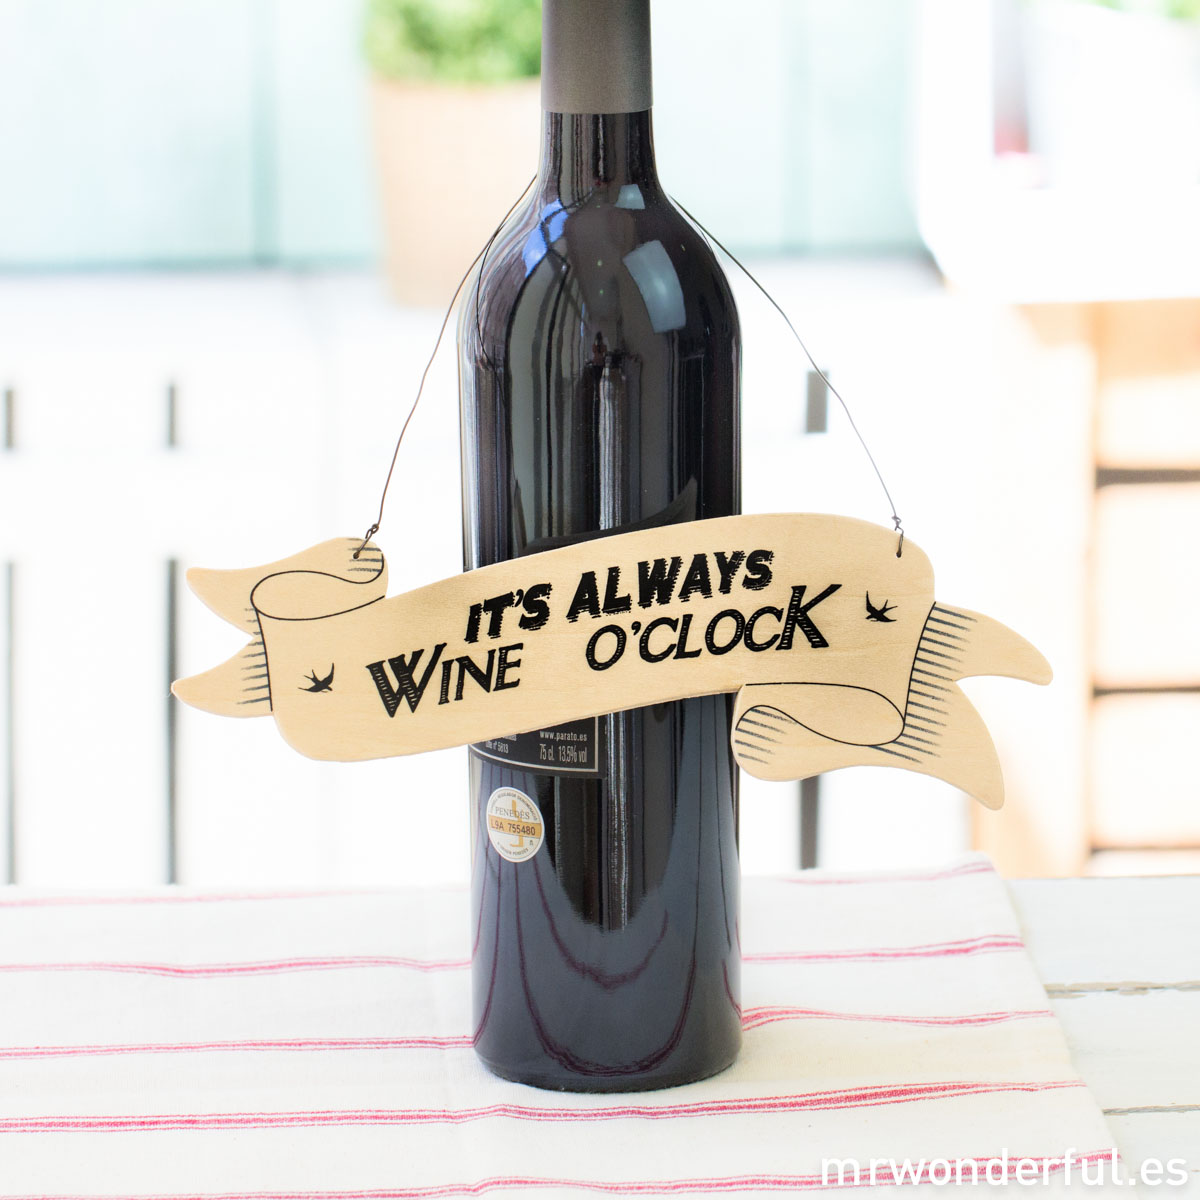 mrwonderful_783_cartel-madera_wine-o-clock-1